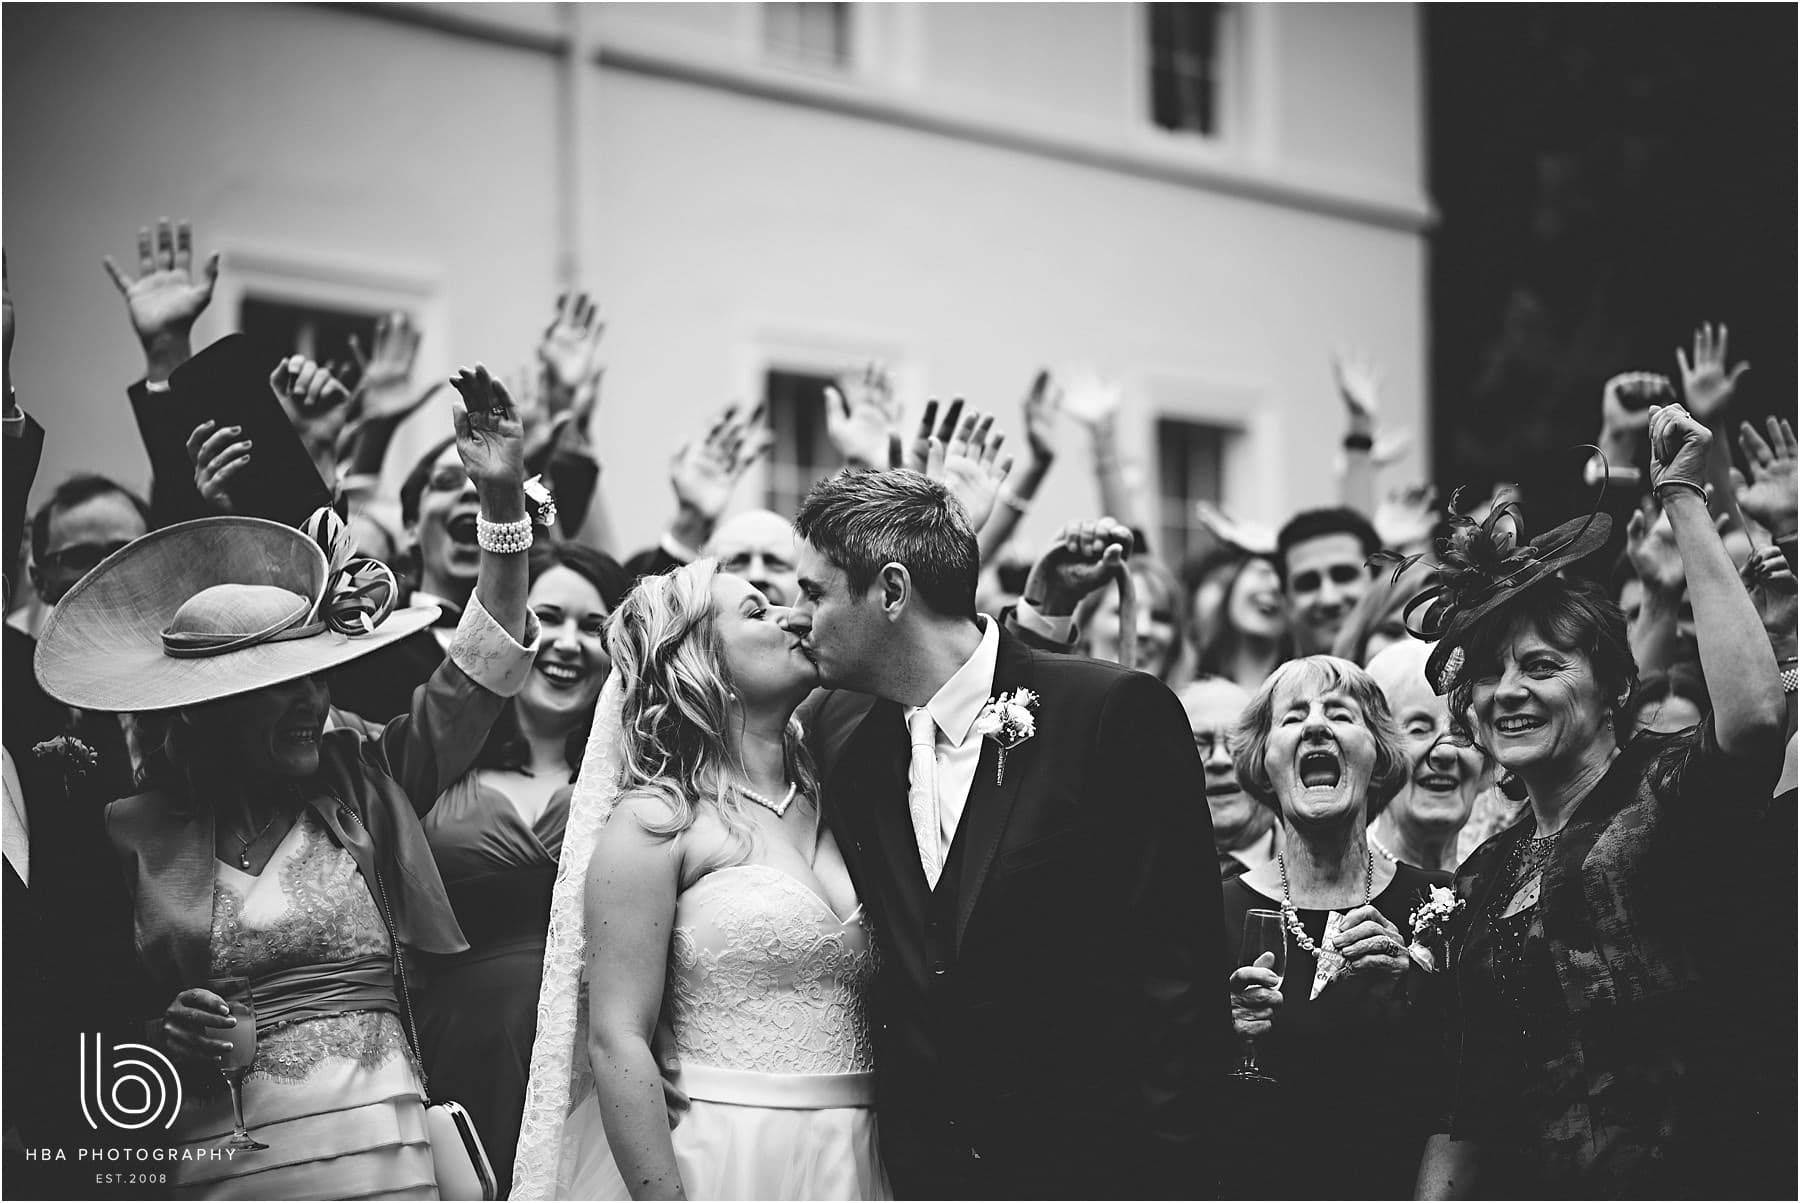 guests cheering as the bride and groom kiss for the first time